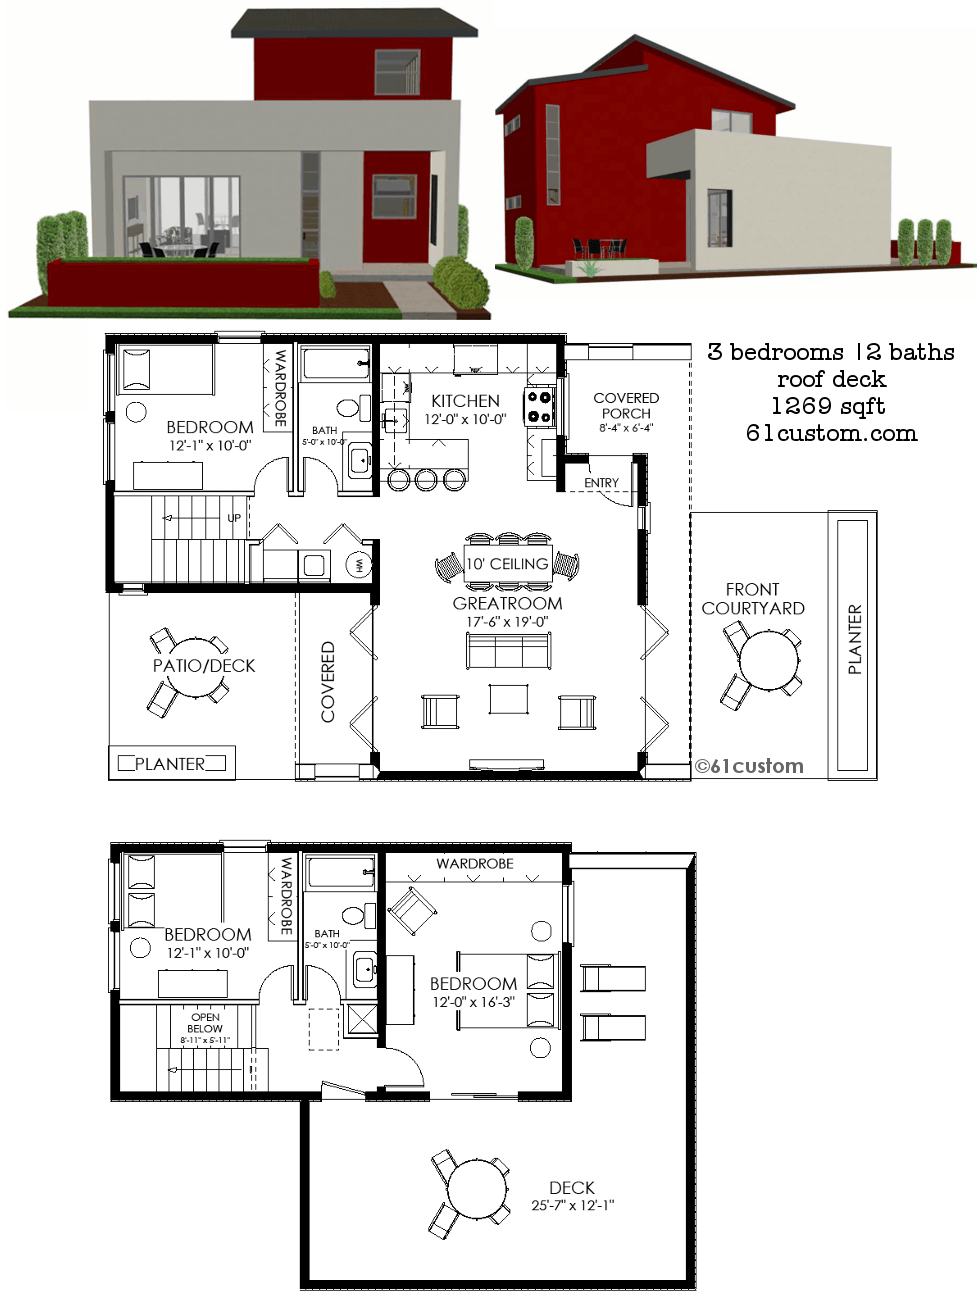 Contemporary Small House Plan 61custom Contemporary